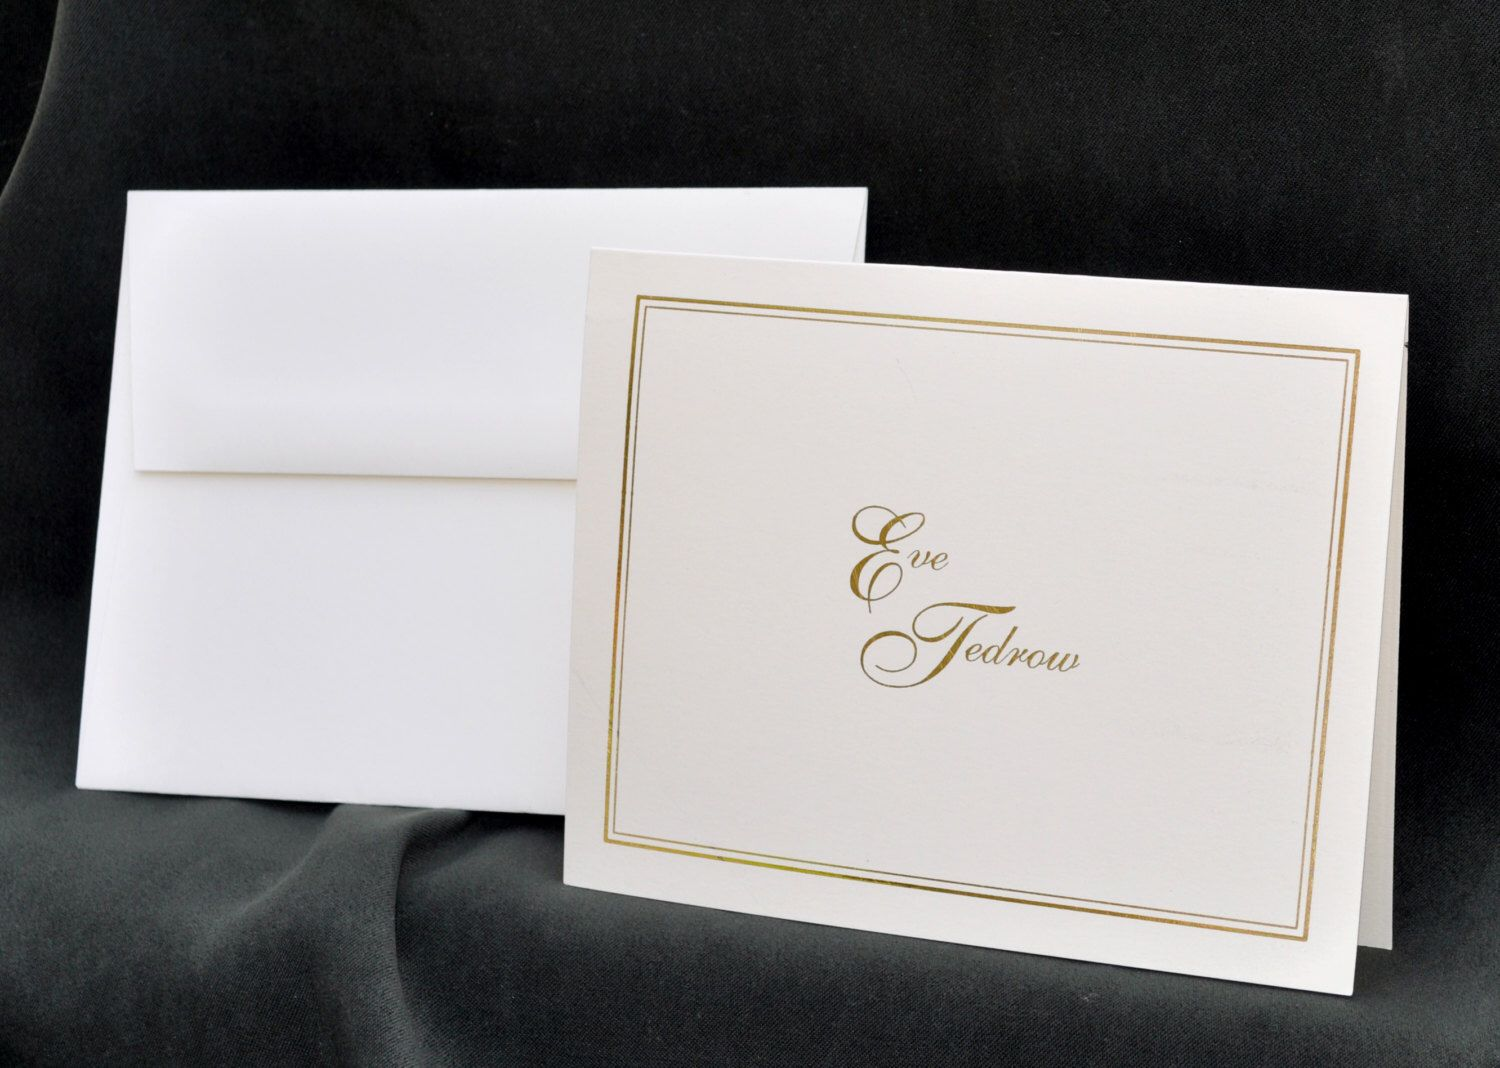 Linen Finished Personalized Note Cards /& Stationery Set Embossed Panel The Enchanted Envelope